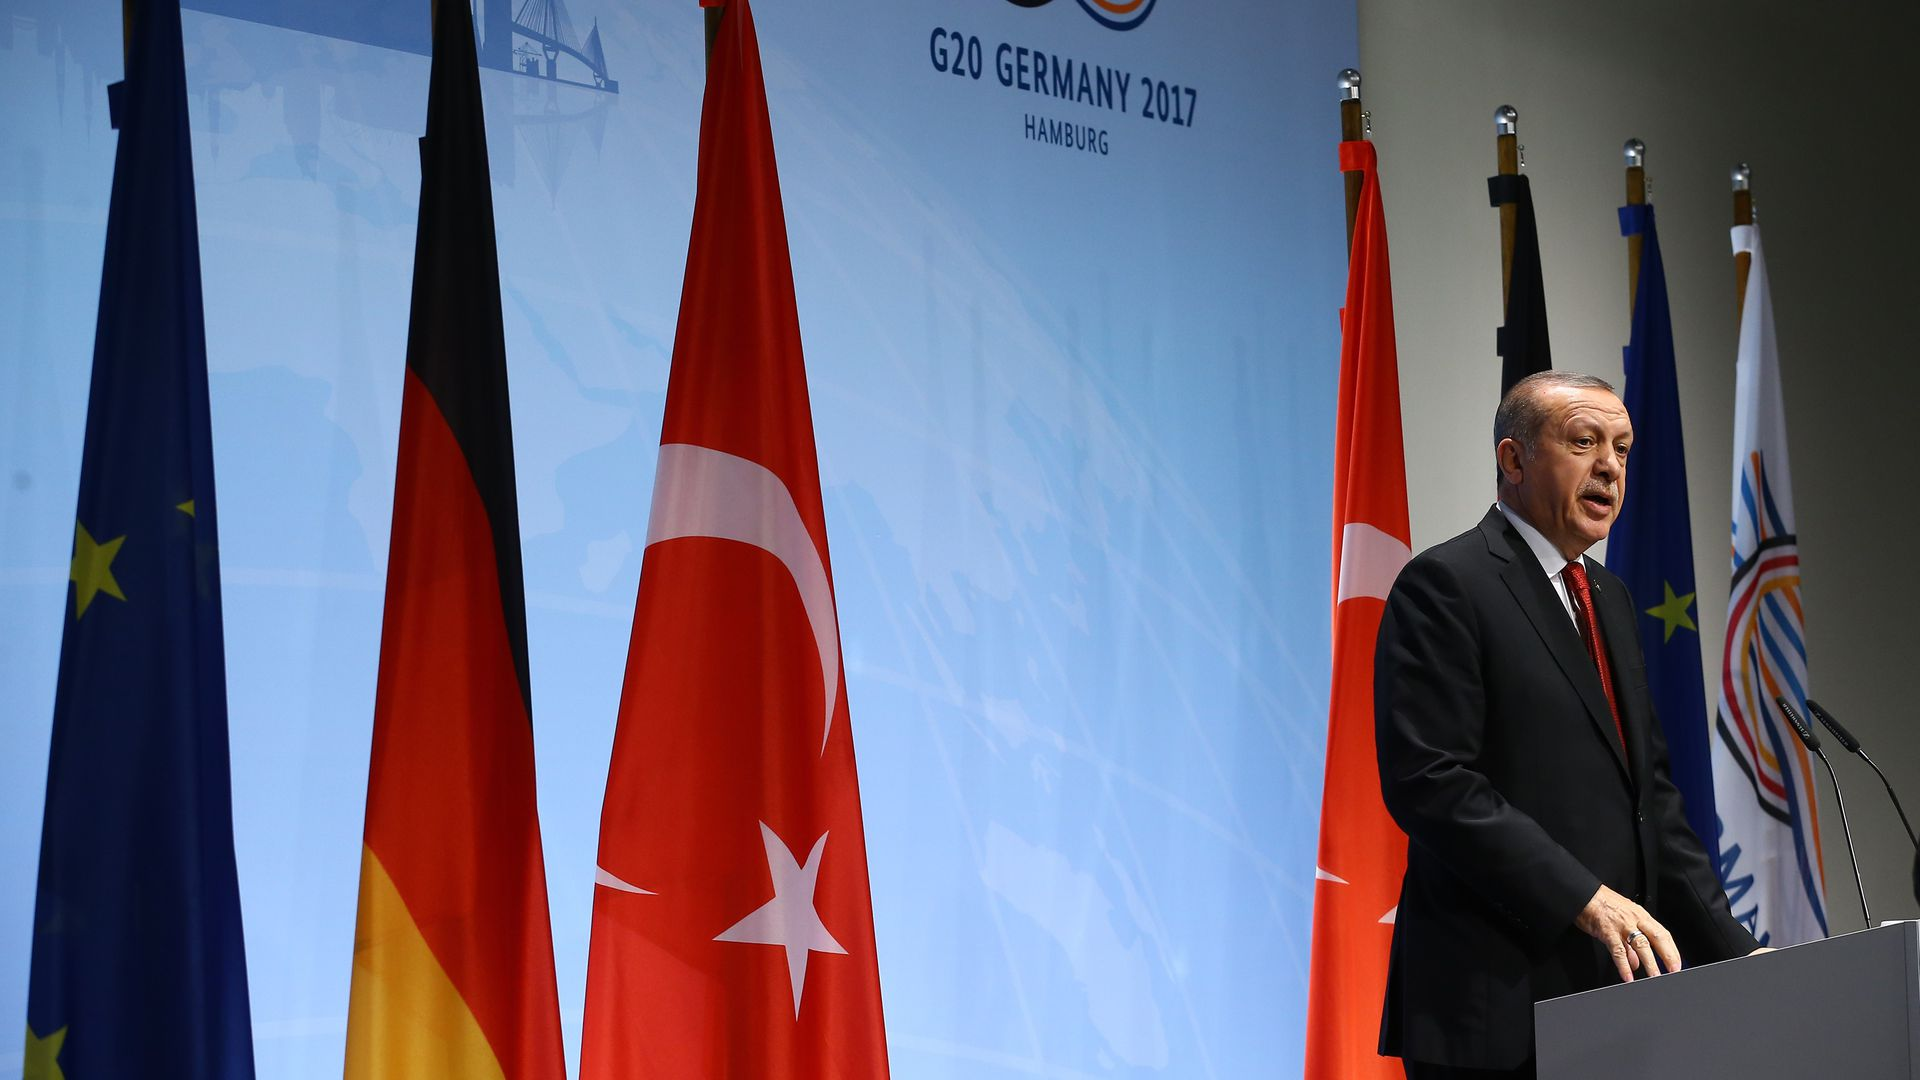 Turkish president giving speech at G20 summit